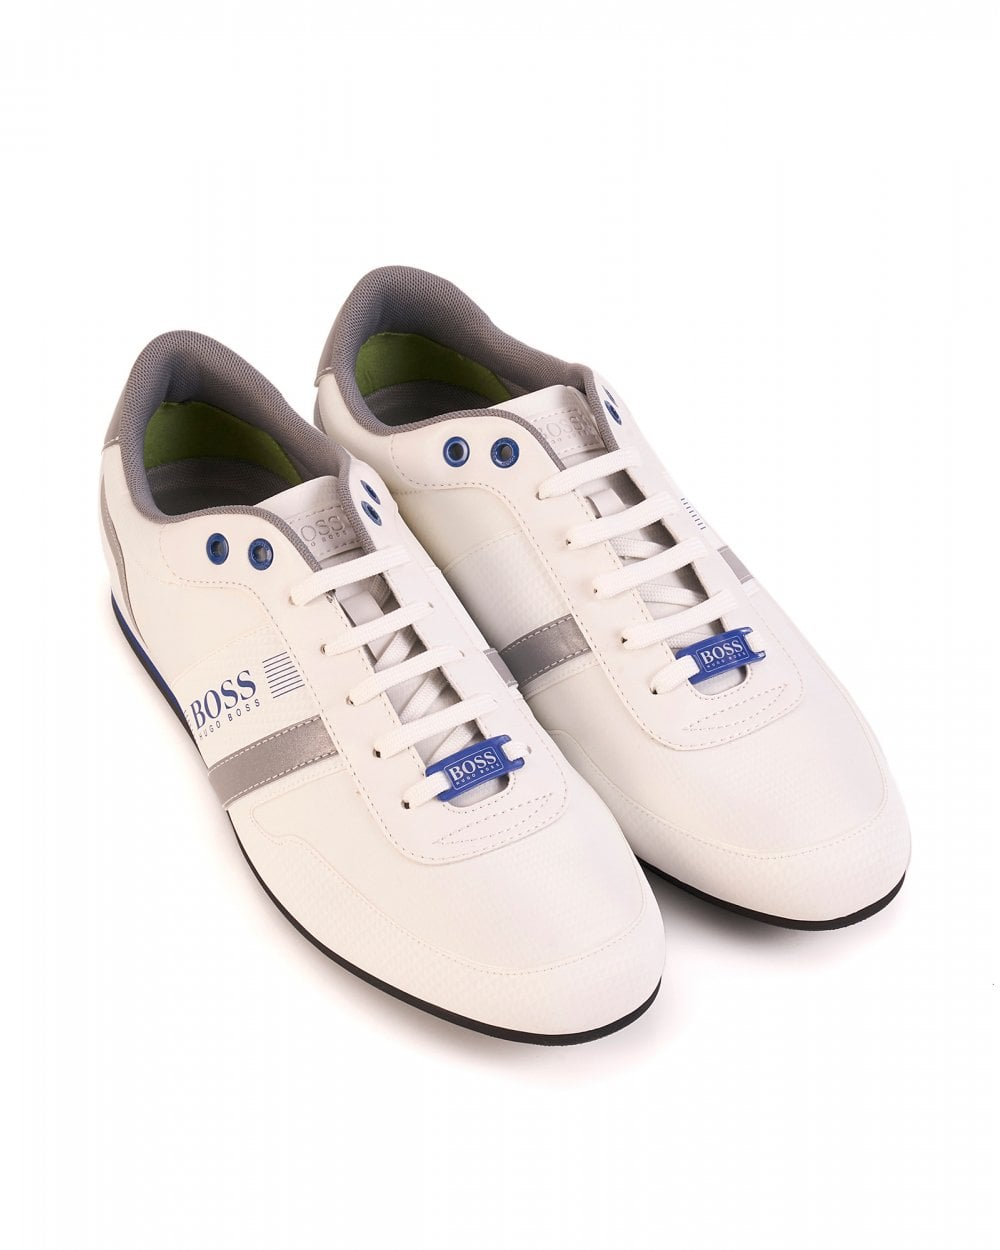 temperament shoes most desirable fashion choose best Mens Lighter Low Jacquard Trainers, White Nylon Sneakers